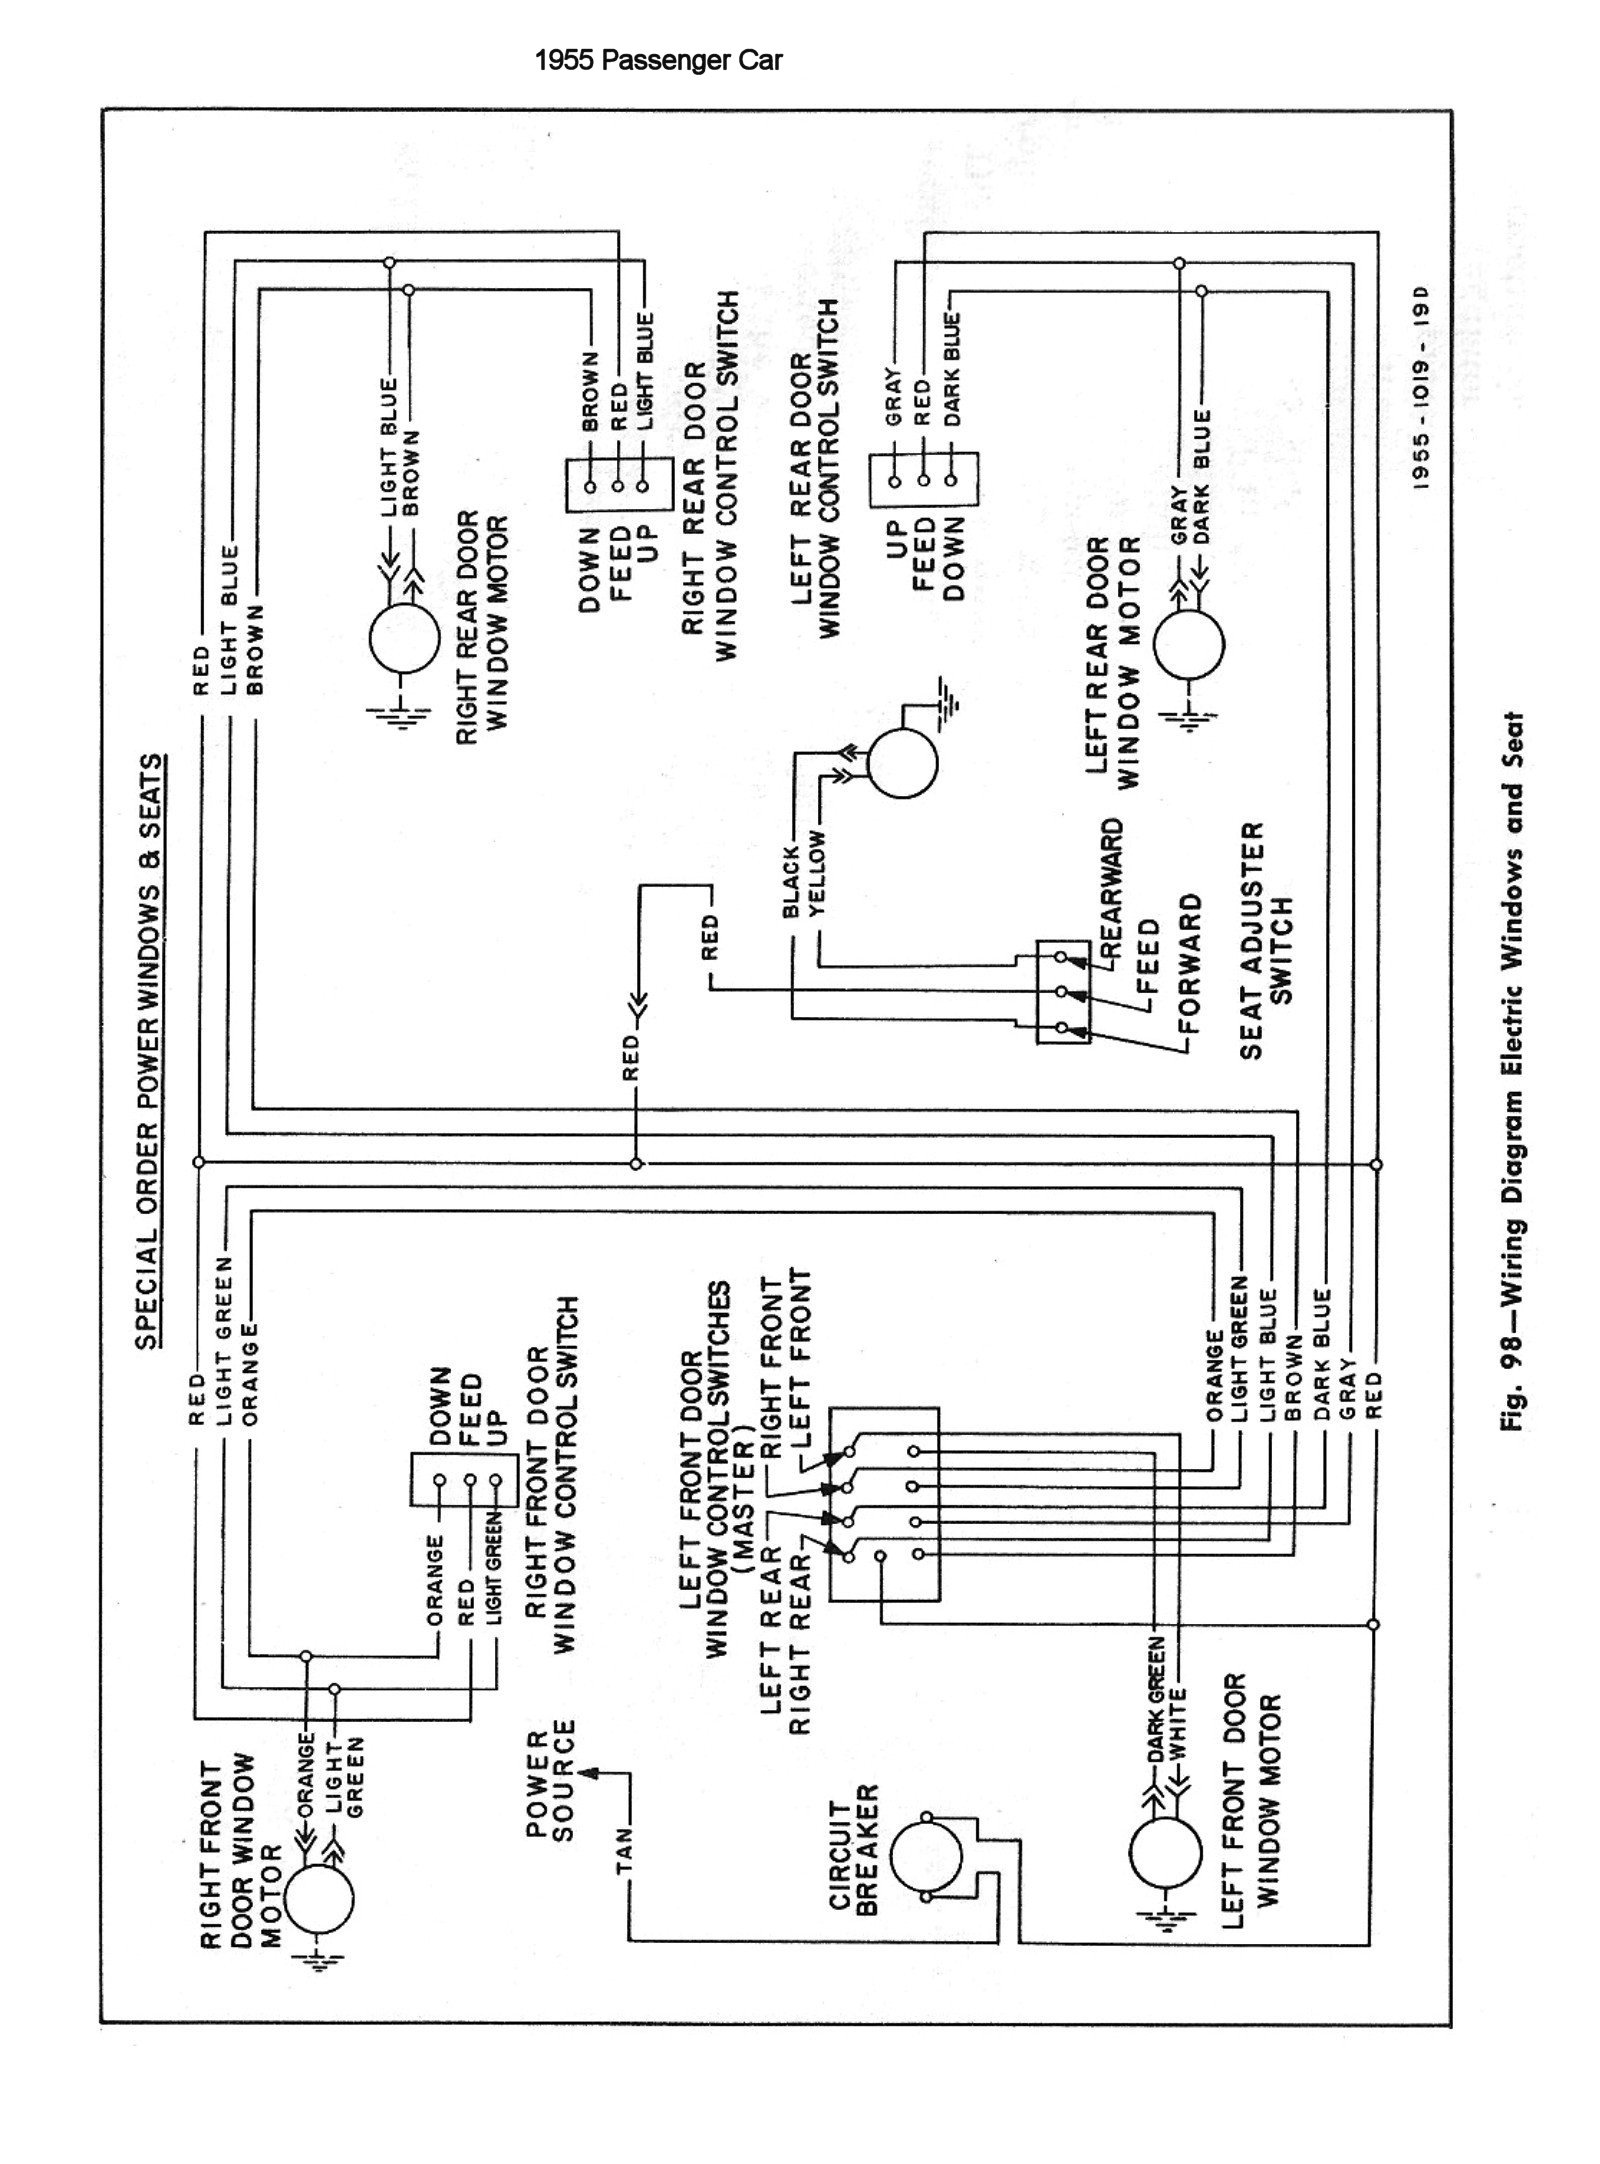 chevy truck wiring diagram image wiring diagram 55 chevy truck the wiring diagram on 1985 chevy truck wiring diagram